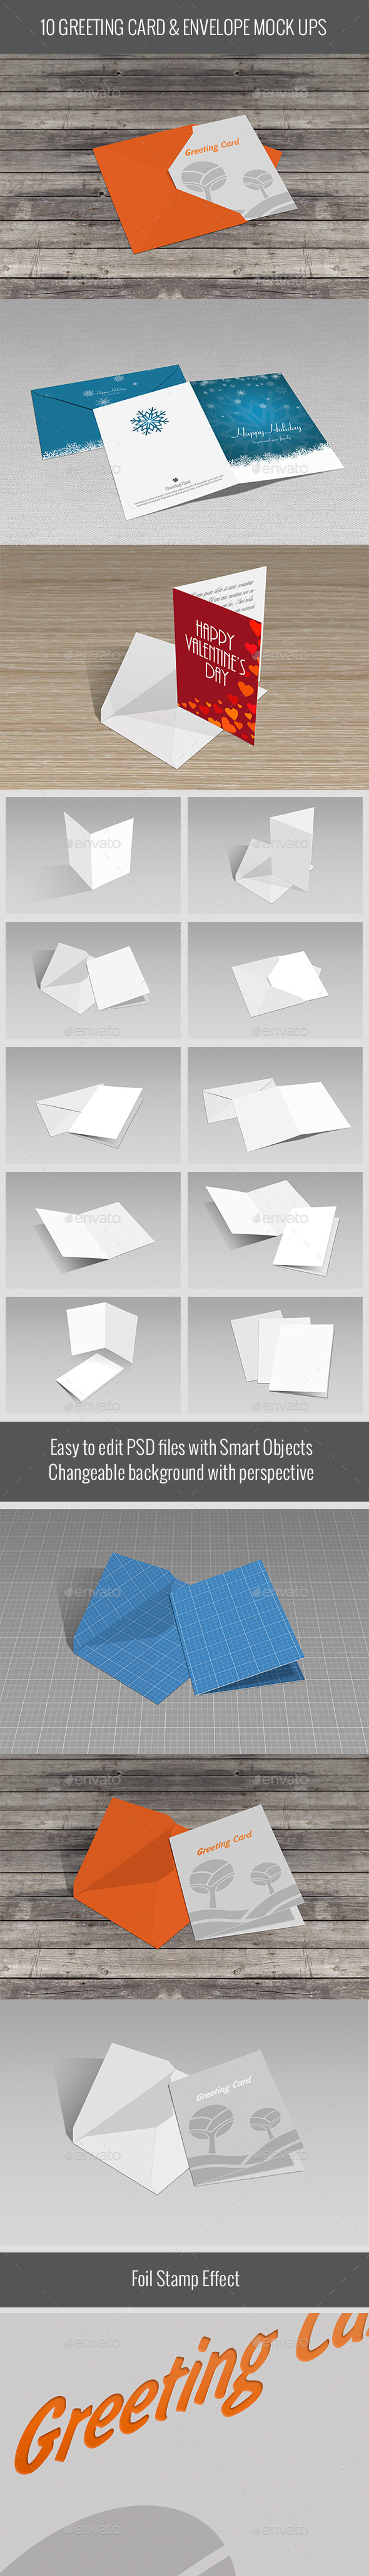 GraphicRiver Greeting Card & Envelope Mock Ups 10175589